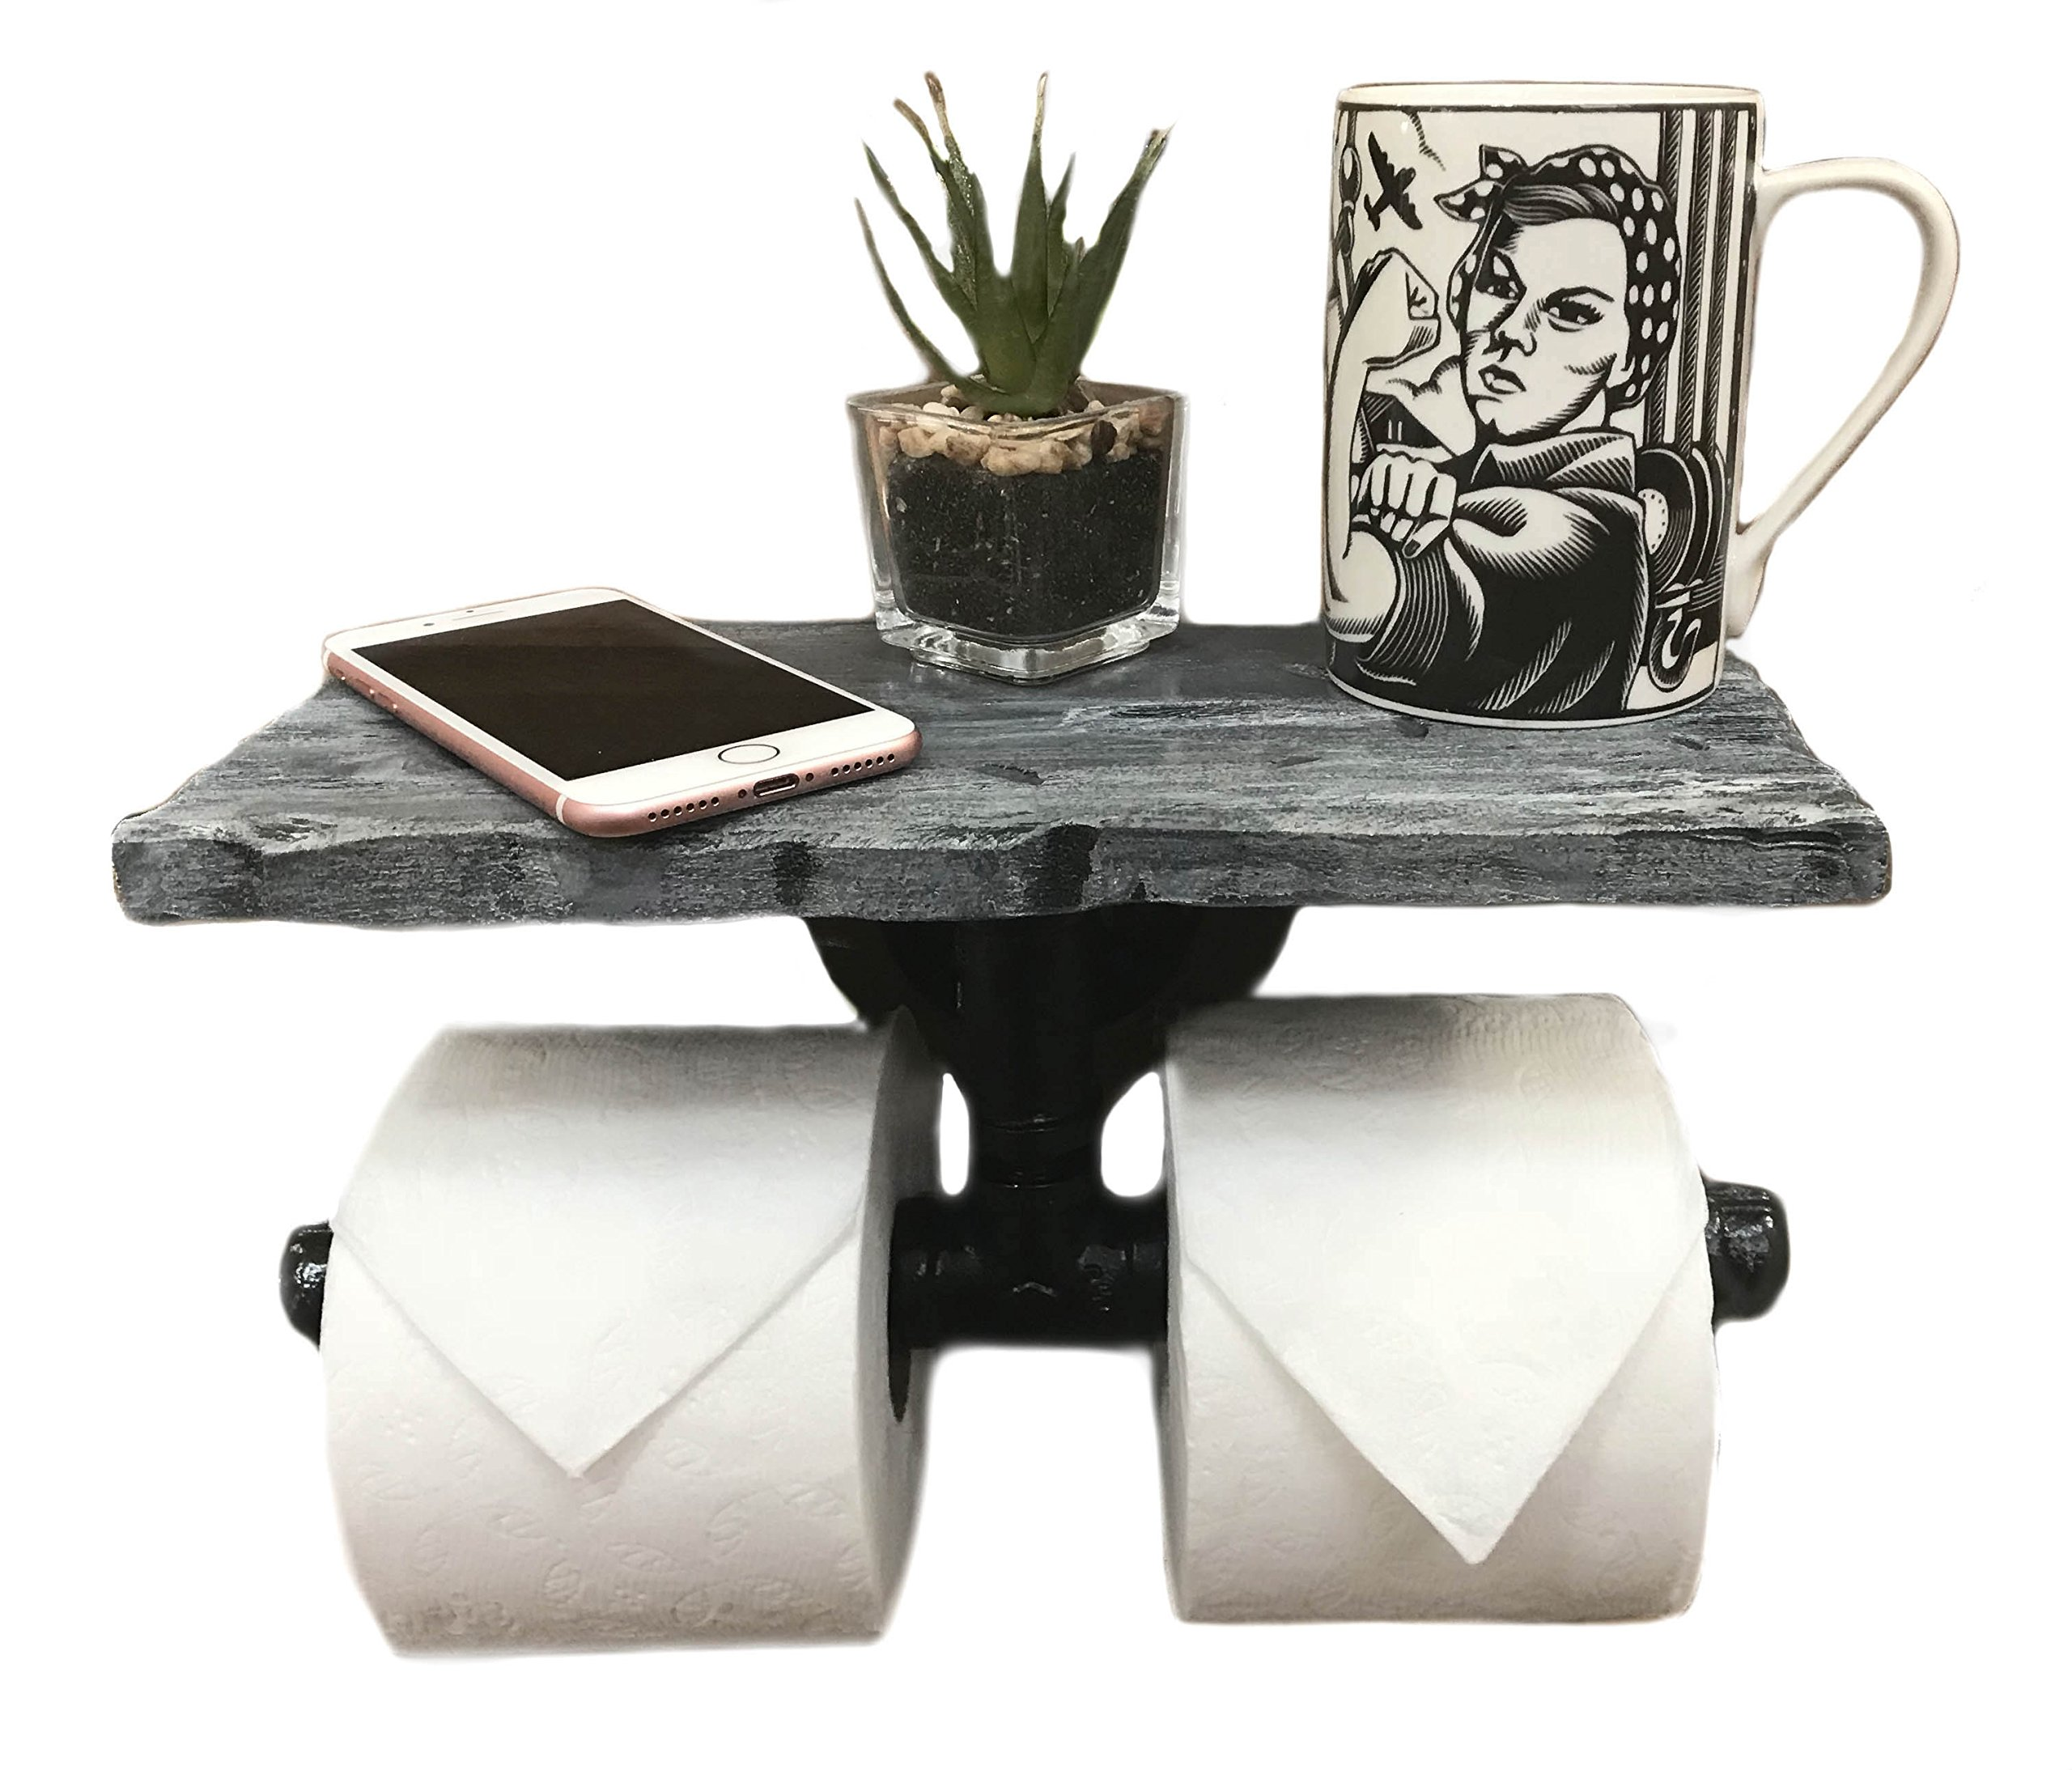 Piping Hot Art Works Toilet Paper Holder-Multi Roll Design-PERSONALIZED Floating Distressed Weathered Shelf. NEVER RUN OUT OF TP AGAIN ! (Wall Mounting Hardware Included!) (Weathered Blue/Gray)